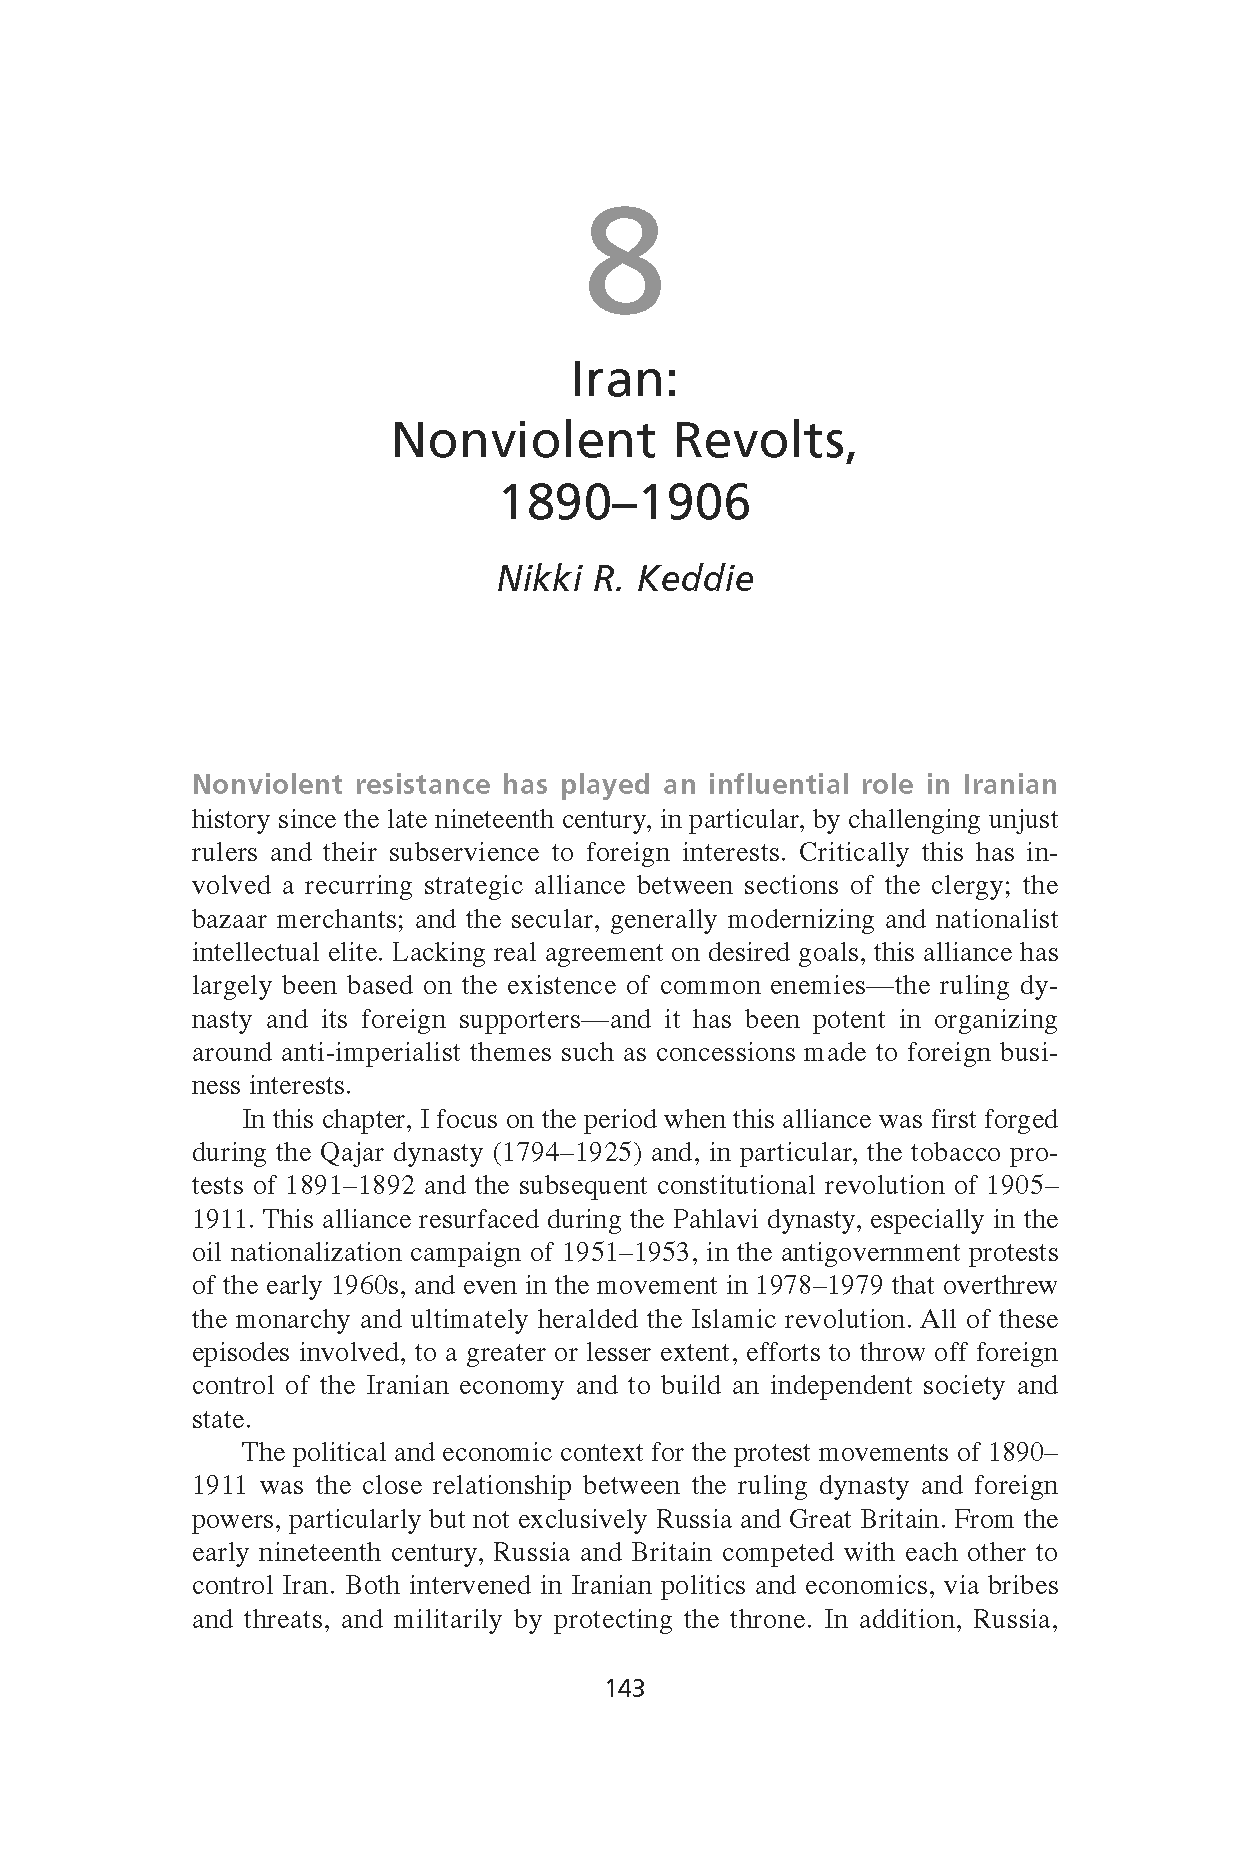 Iran: Nonviolent Revolts, 1890-1906 (Chapter 8 from 'Recovering Nonviolent History')